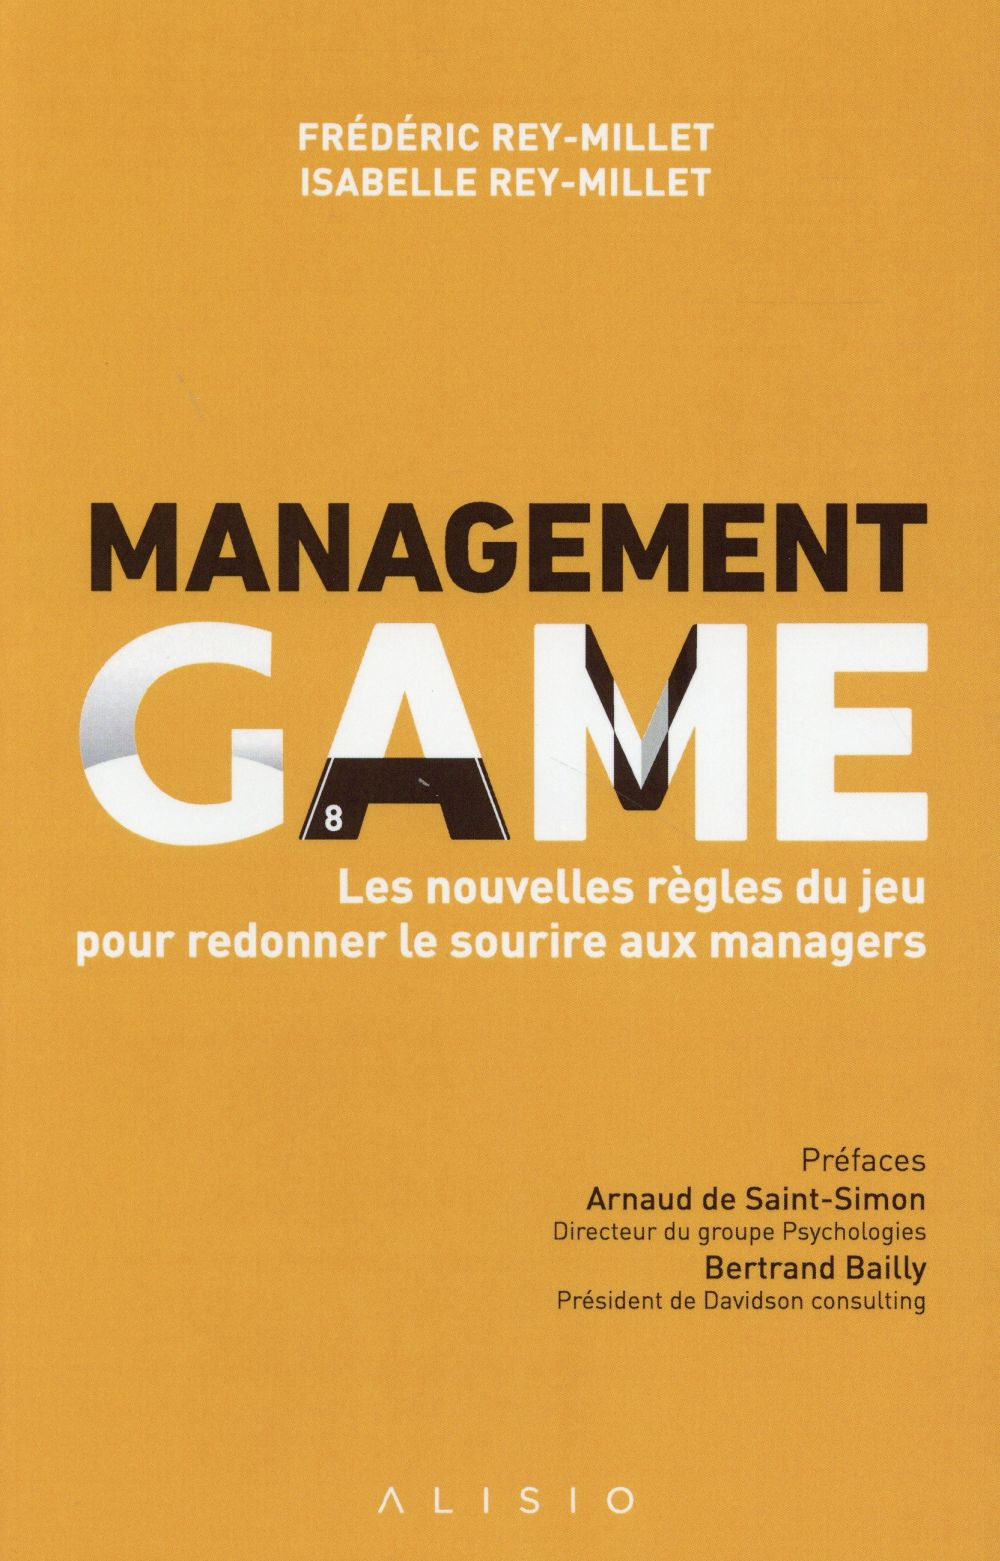 MANAGEMENT GAME